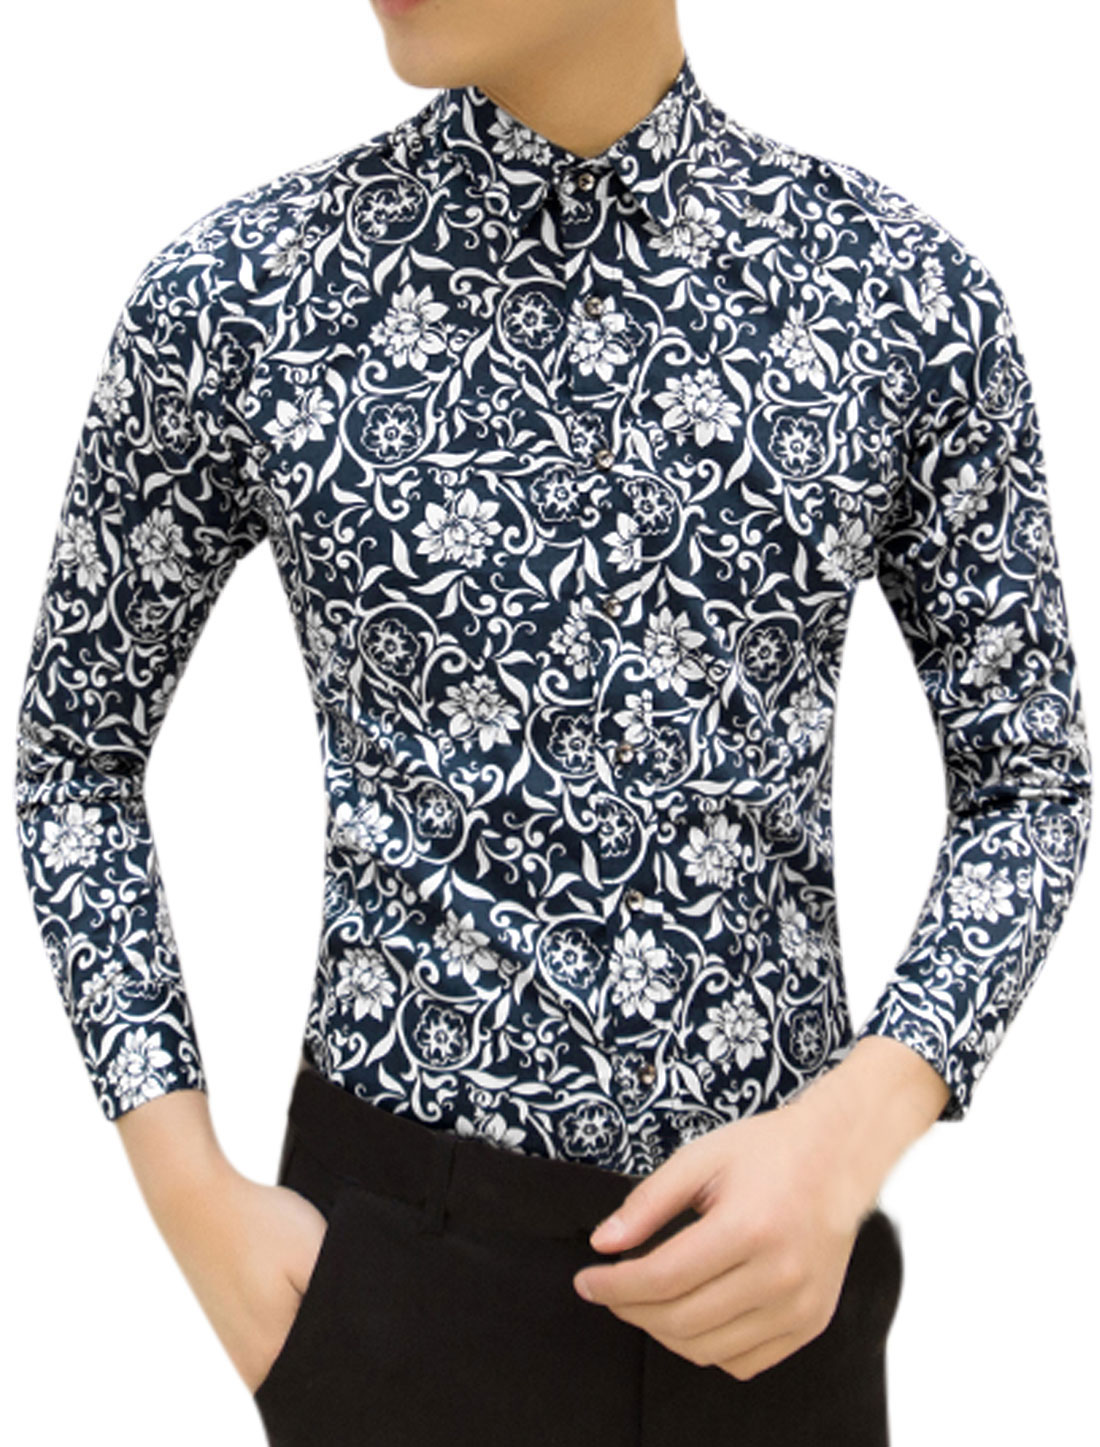 Men Point Collar Floral Print Button Down Slim Fit Shirt Navy Blue M